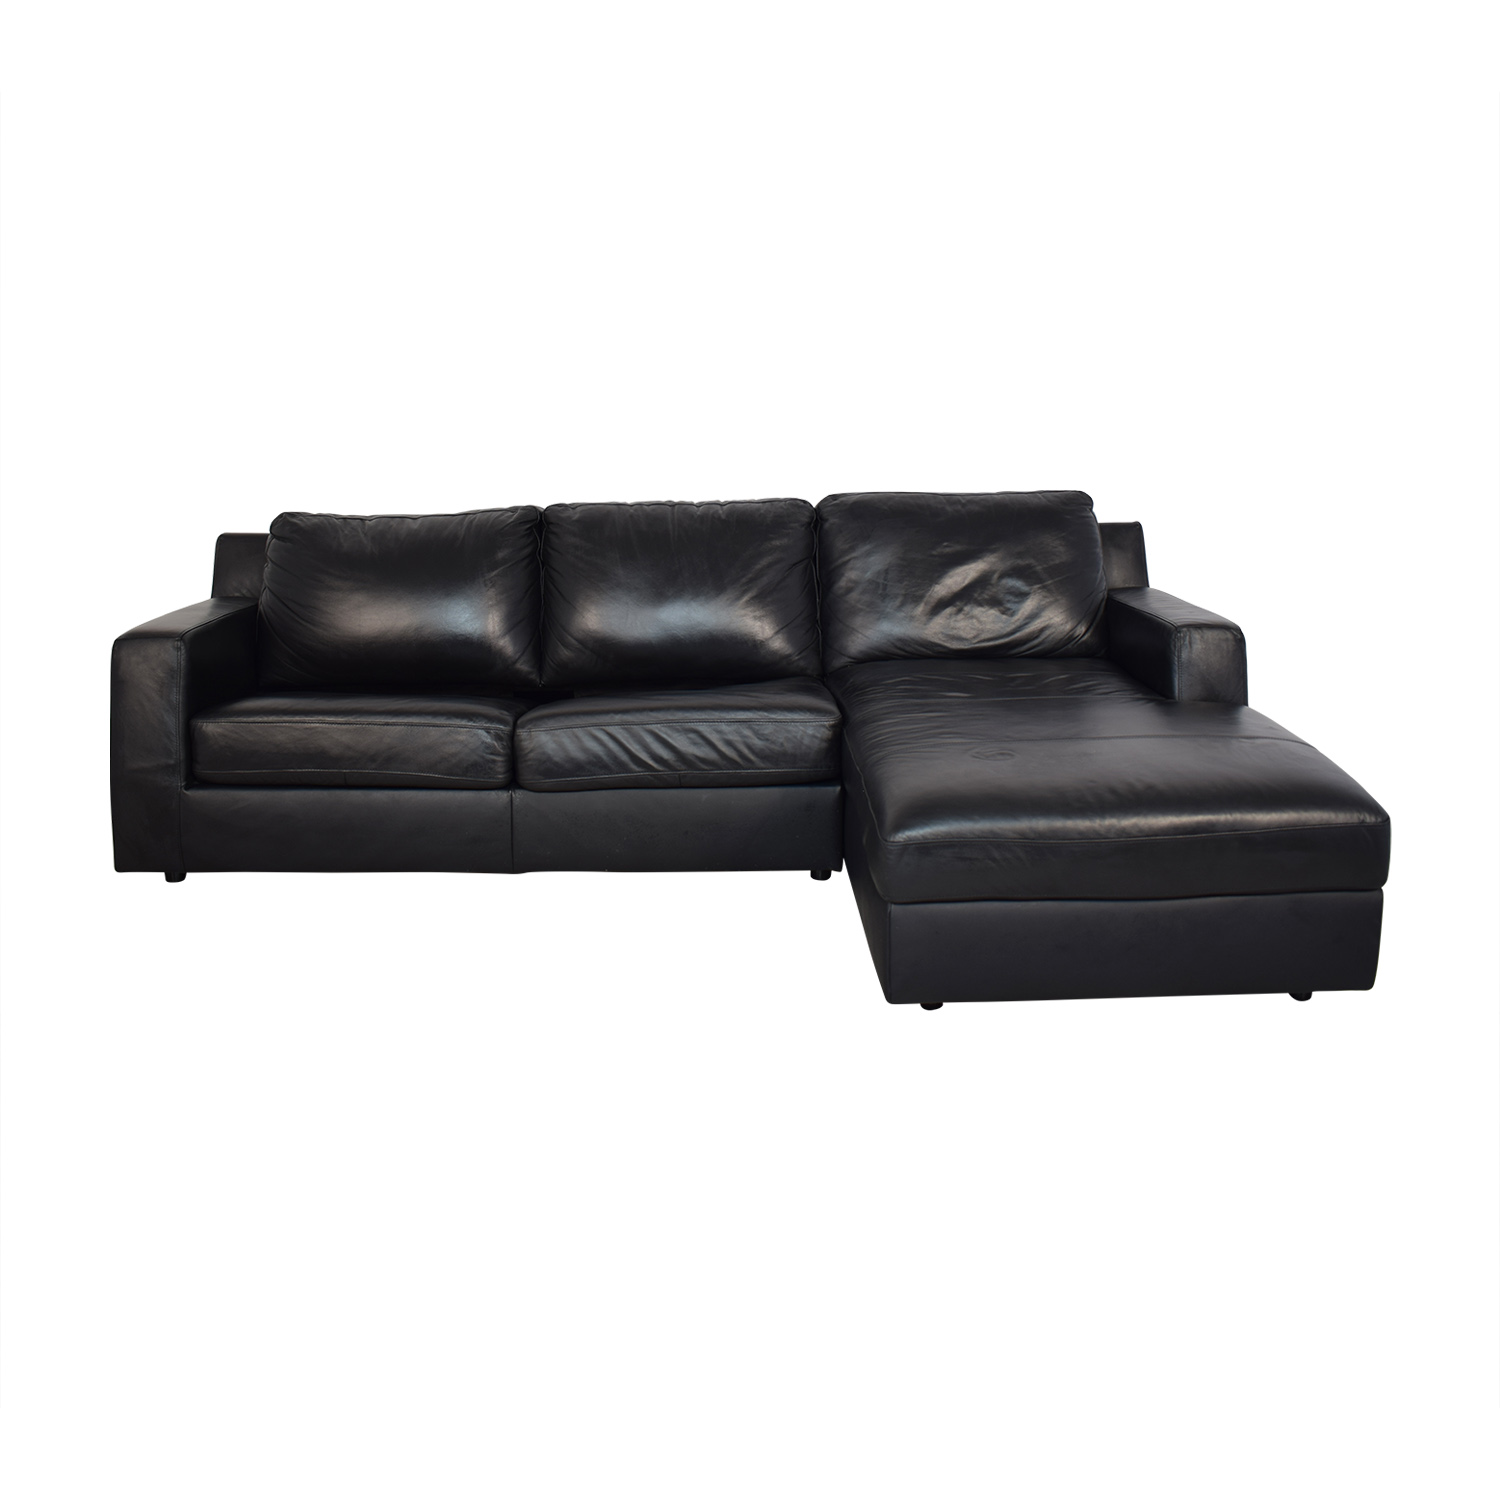 56% OFF - J&M Furniture J&M Furniture Elizabeth Sleeper Sectional Sofa /  Sofas